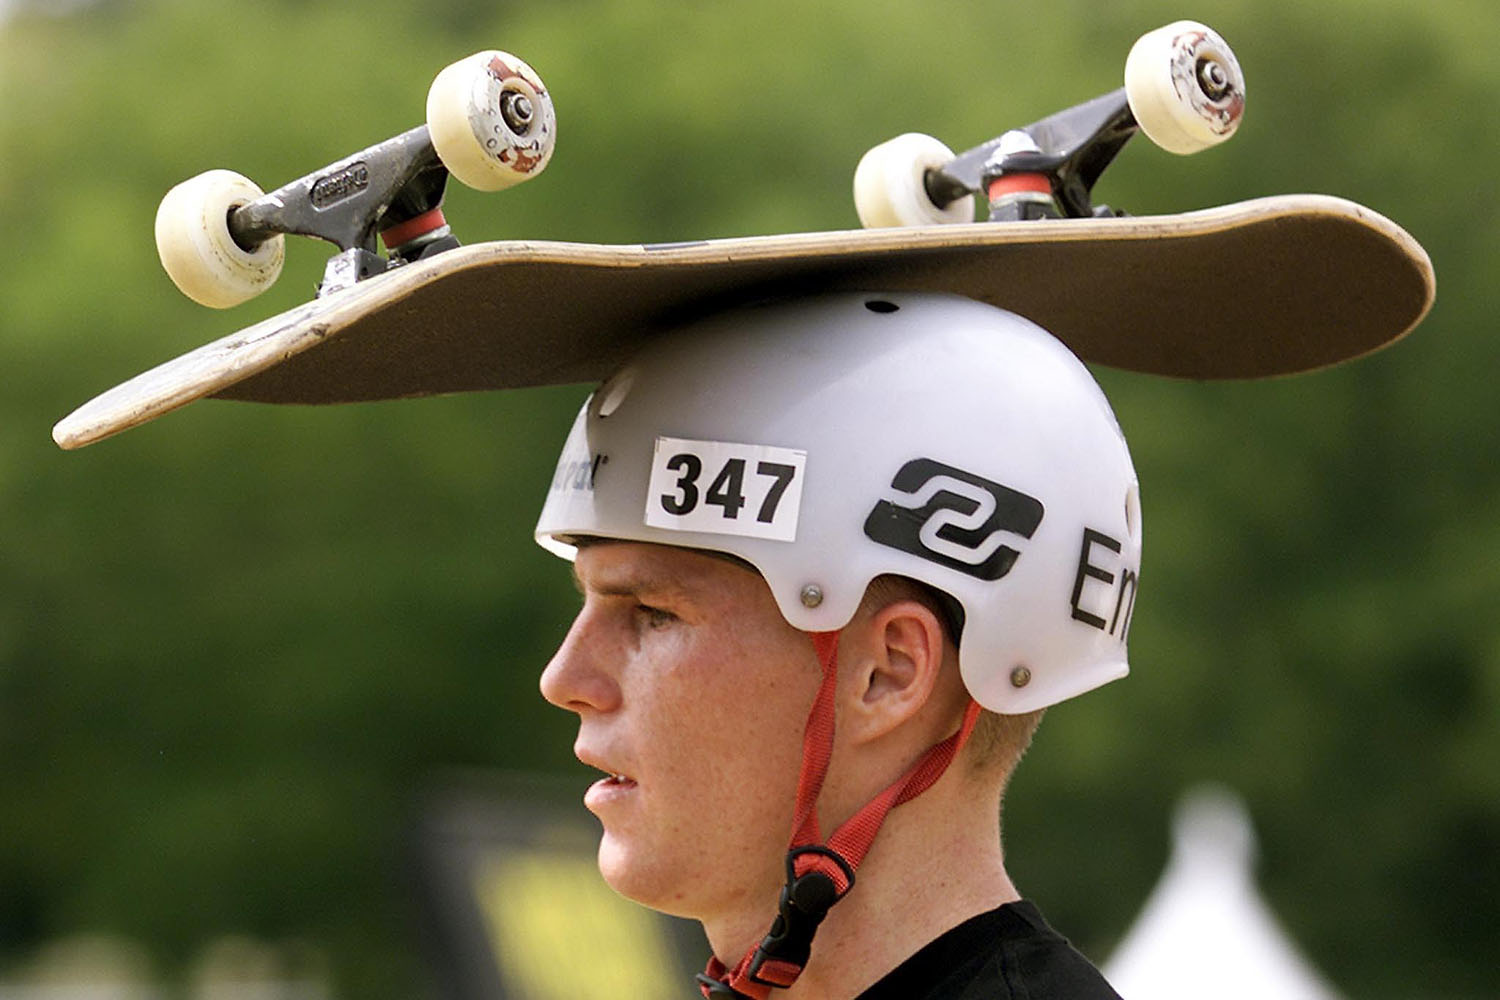 Chad Bartie takes a breather before the start of the Men's Skateboard Park final at the 2001 Summer X Games at Philadelphia's First Union Complex 20 April 2001.